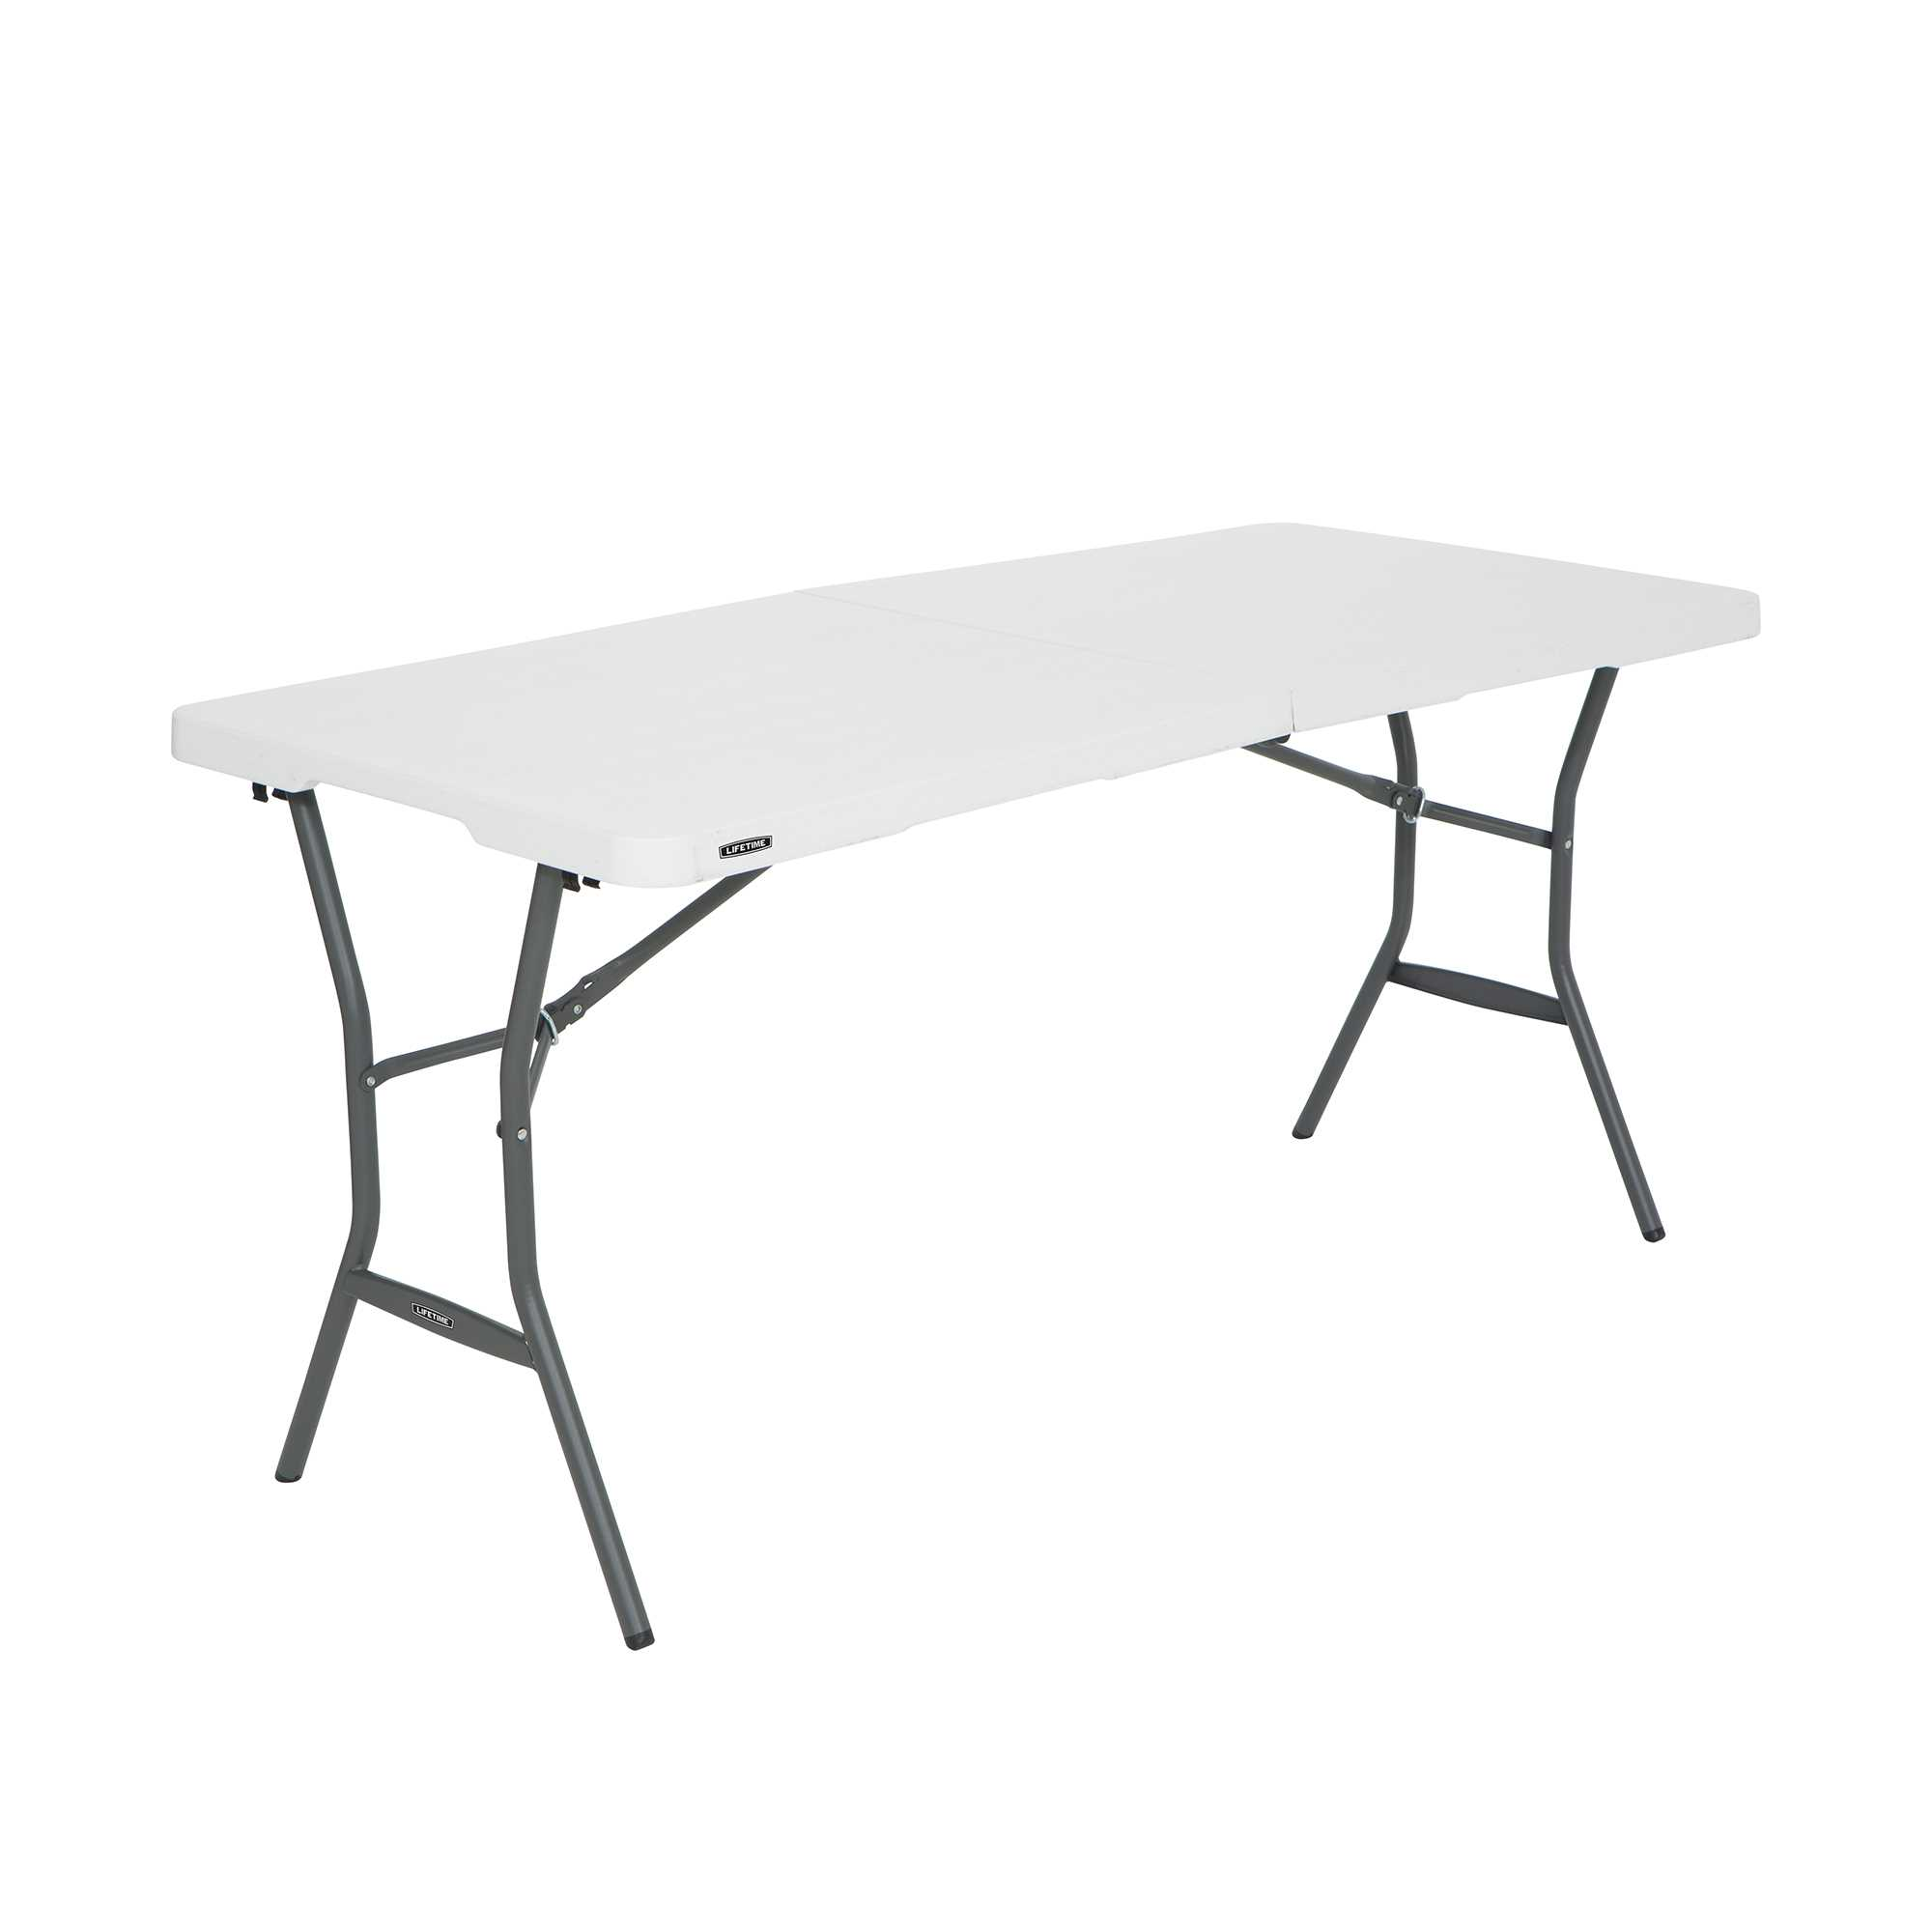 Lifetime 5-Foot Fold-In-Half Table - 14 Pk (Light Commercial)